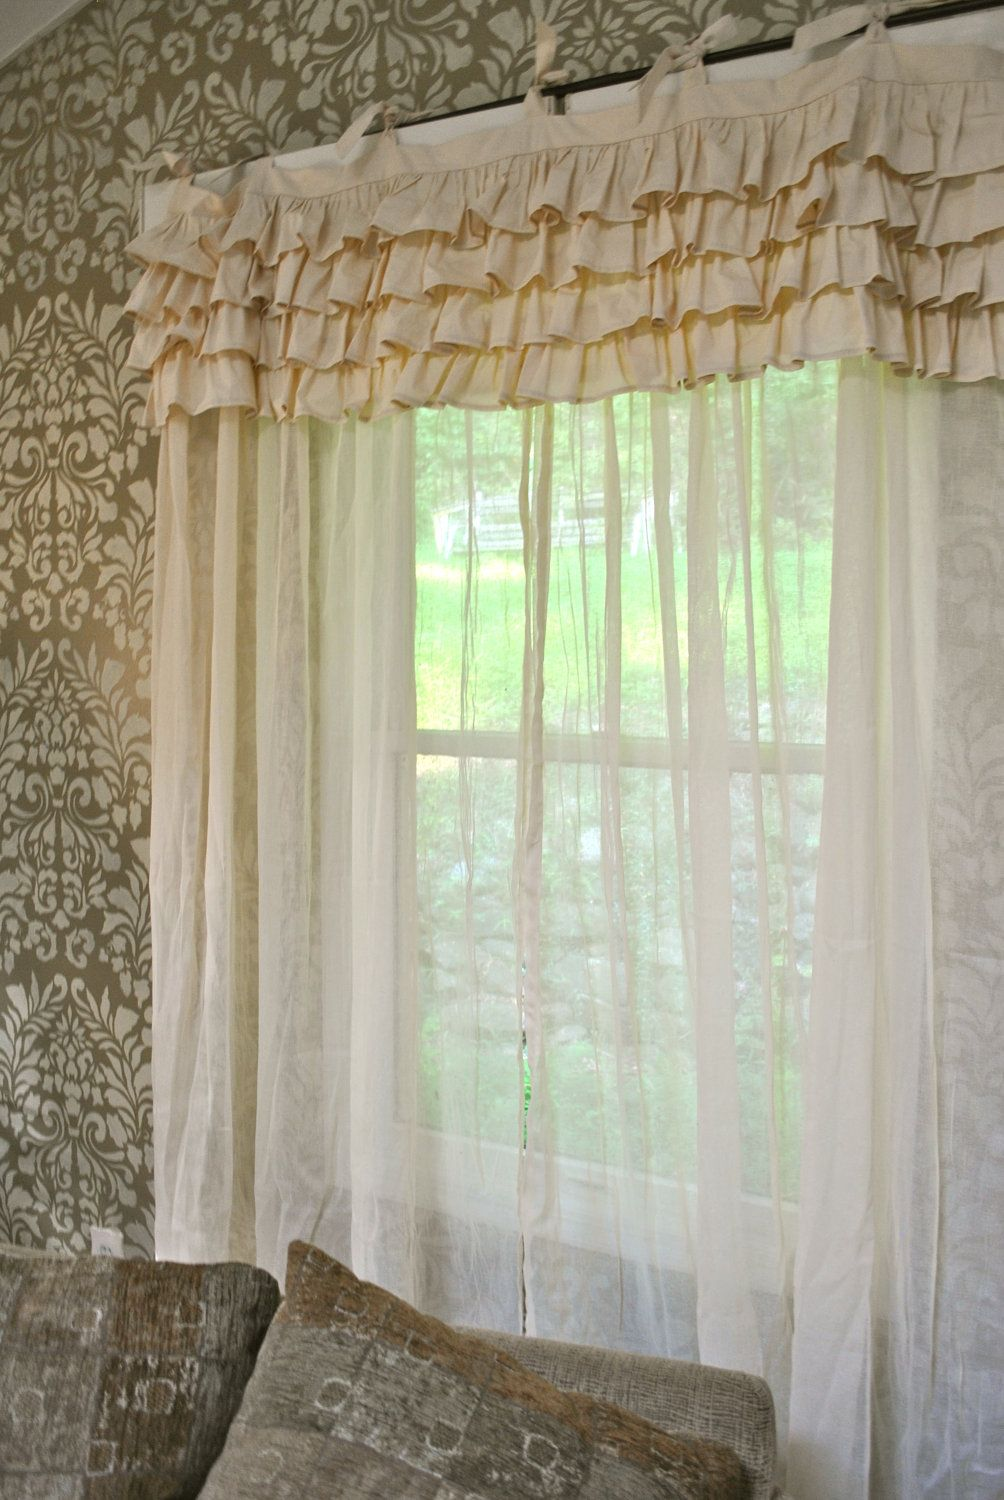 Shim curtains projects pinterest shabby shabby chic bedrooms